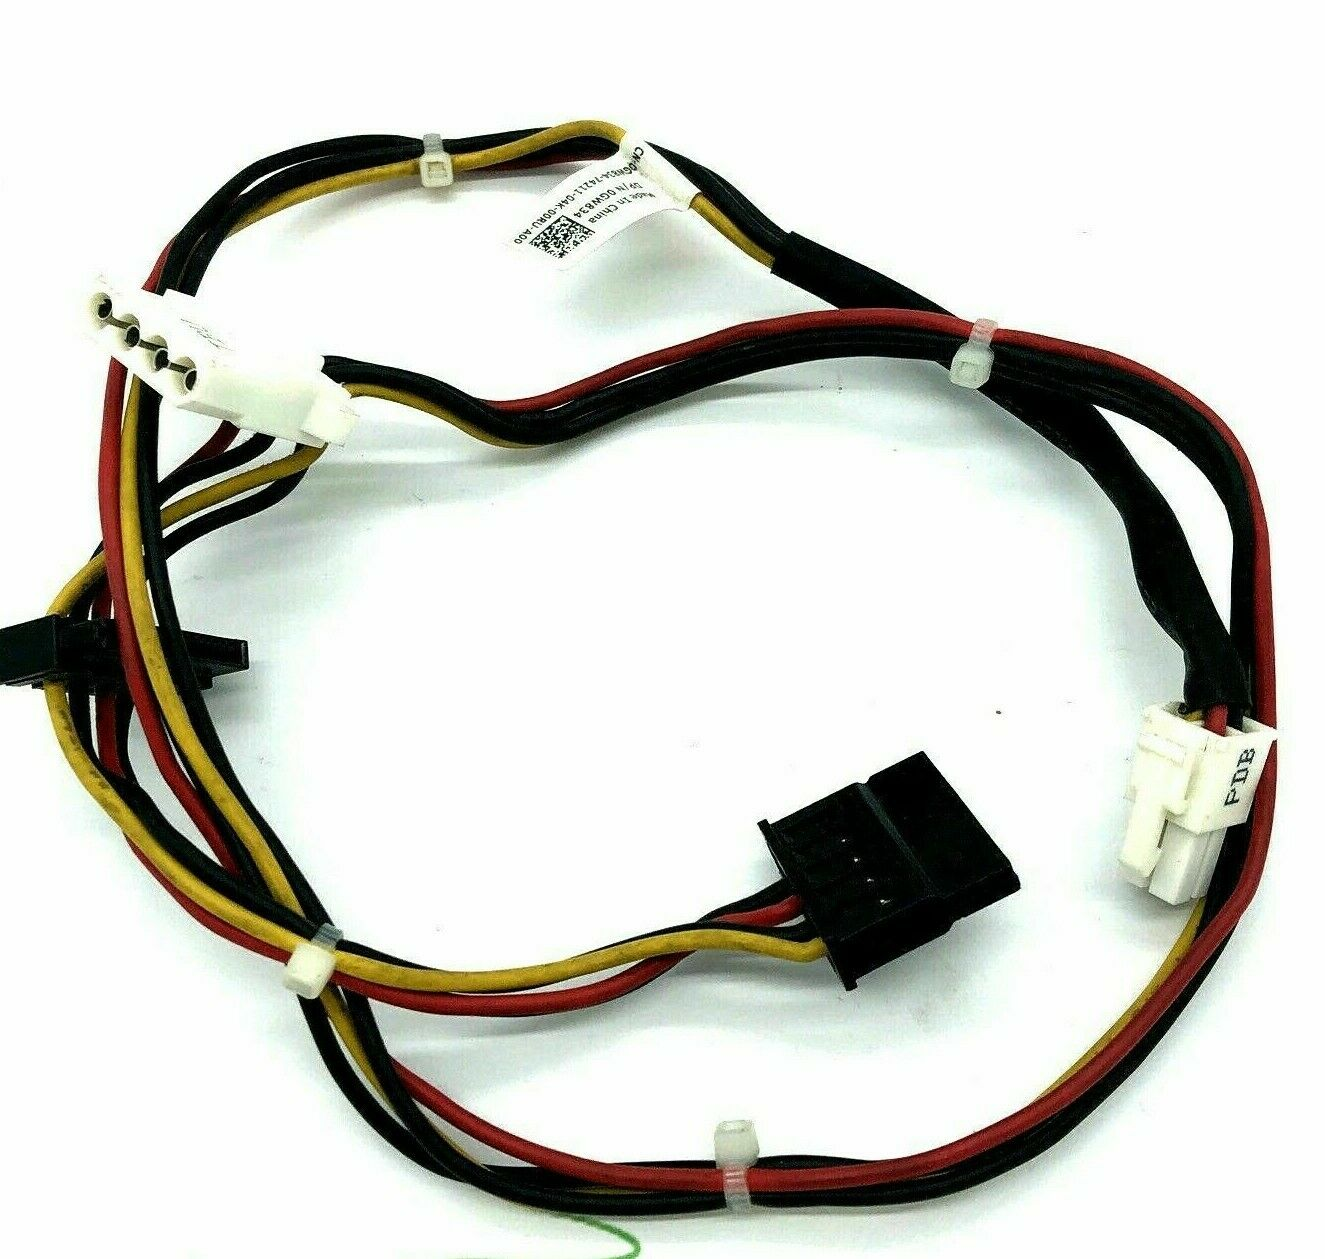 0GW834, GW834 DELL POWEREDGE T610 BACKPLANE 4-PIN AND 2 X SATA POWER CABLE